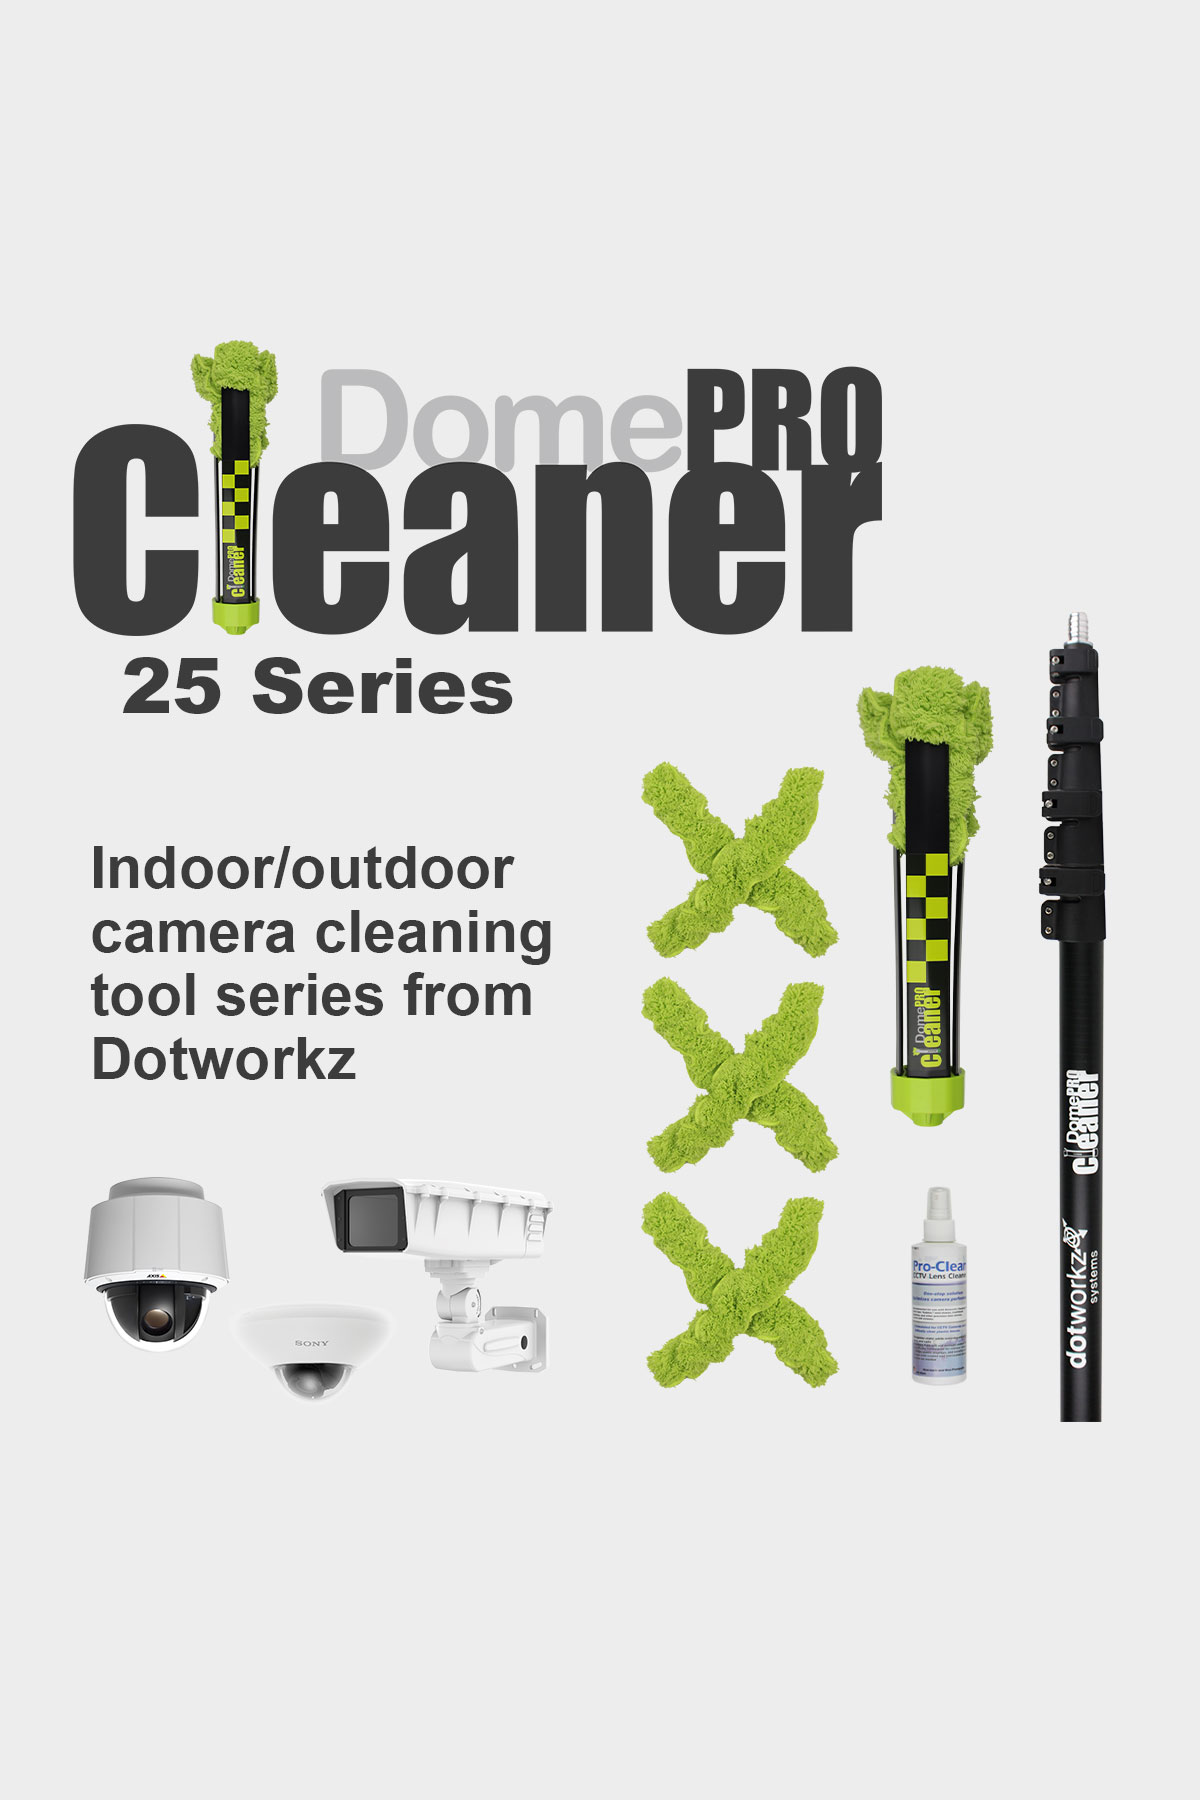 DomeCleanerPRO 25 Series Indoor/Outdoor Lens Cleaning Solution